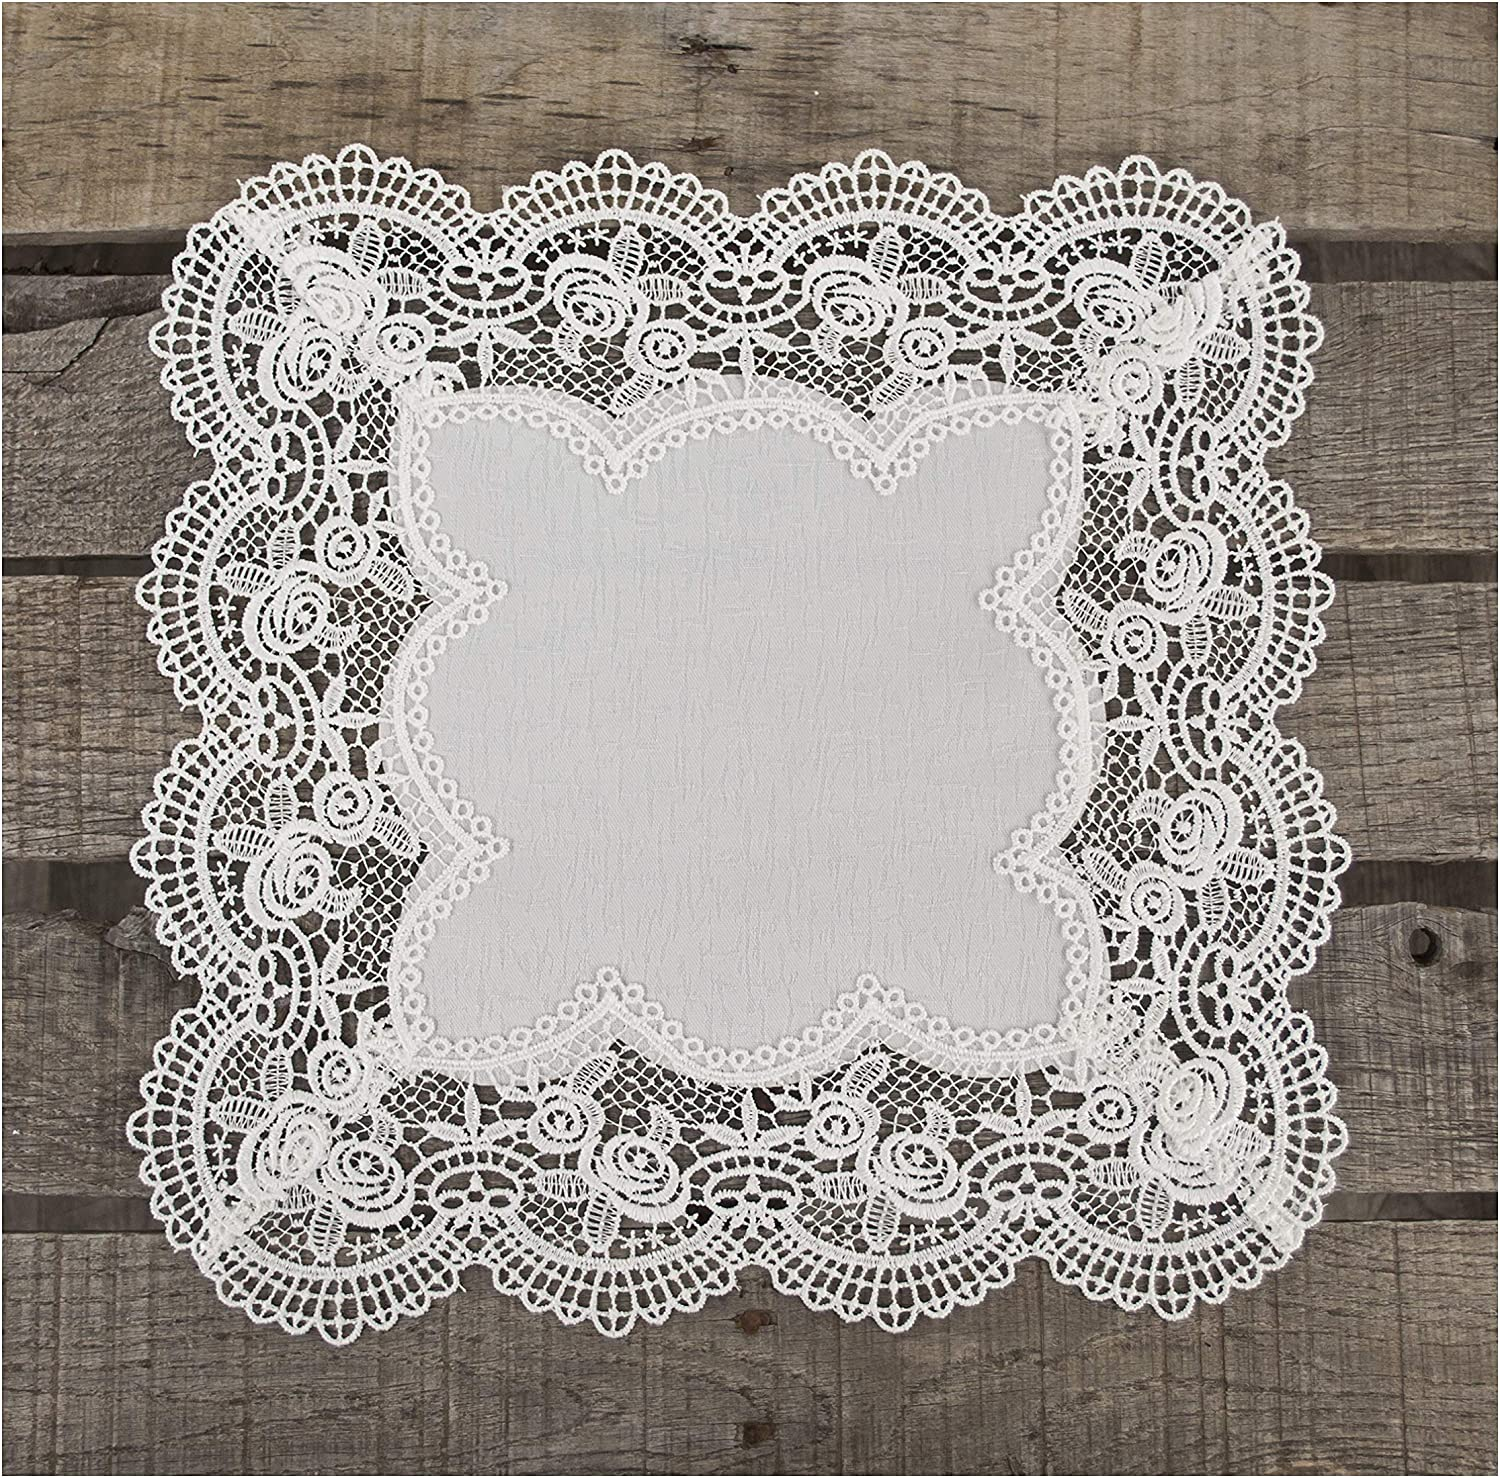 Square Antique Royal Rose European White Jacquard Lace Table Top Centerpiece 15 Inch Approx Doily Placemat